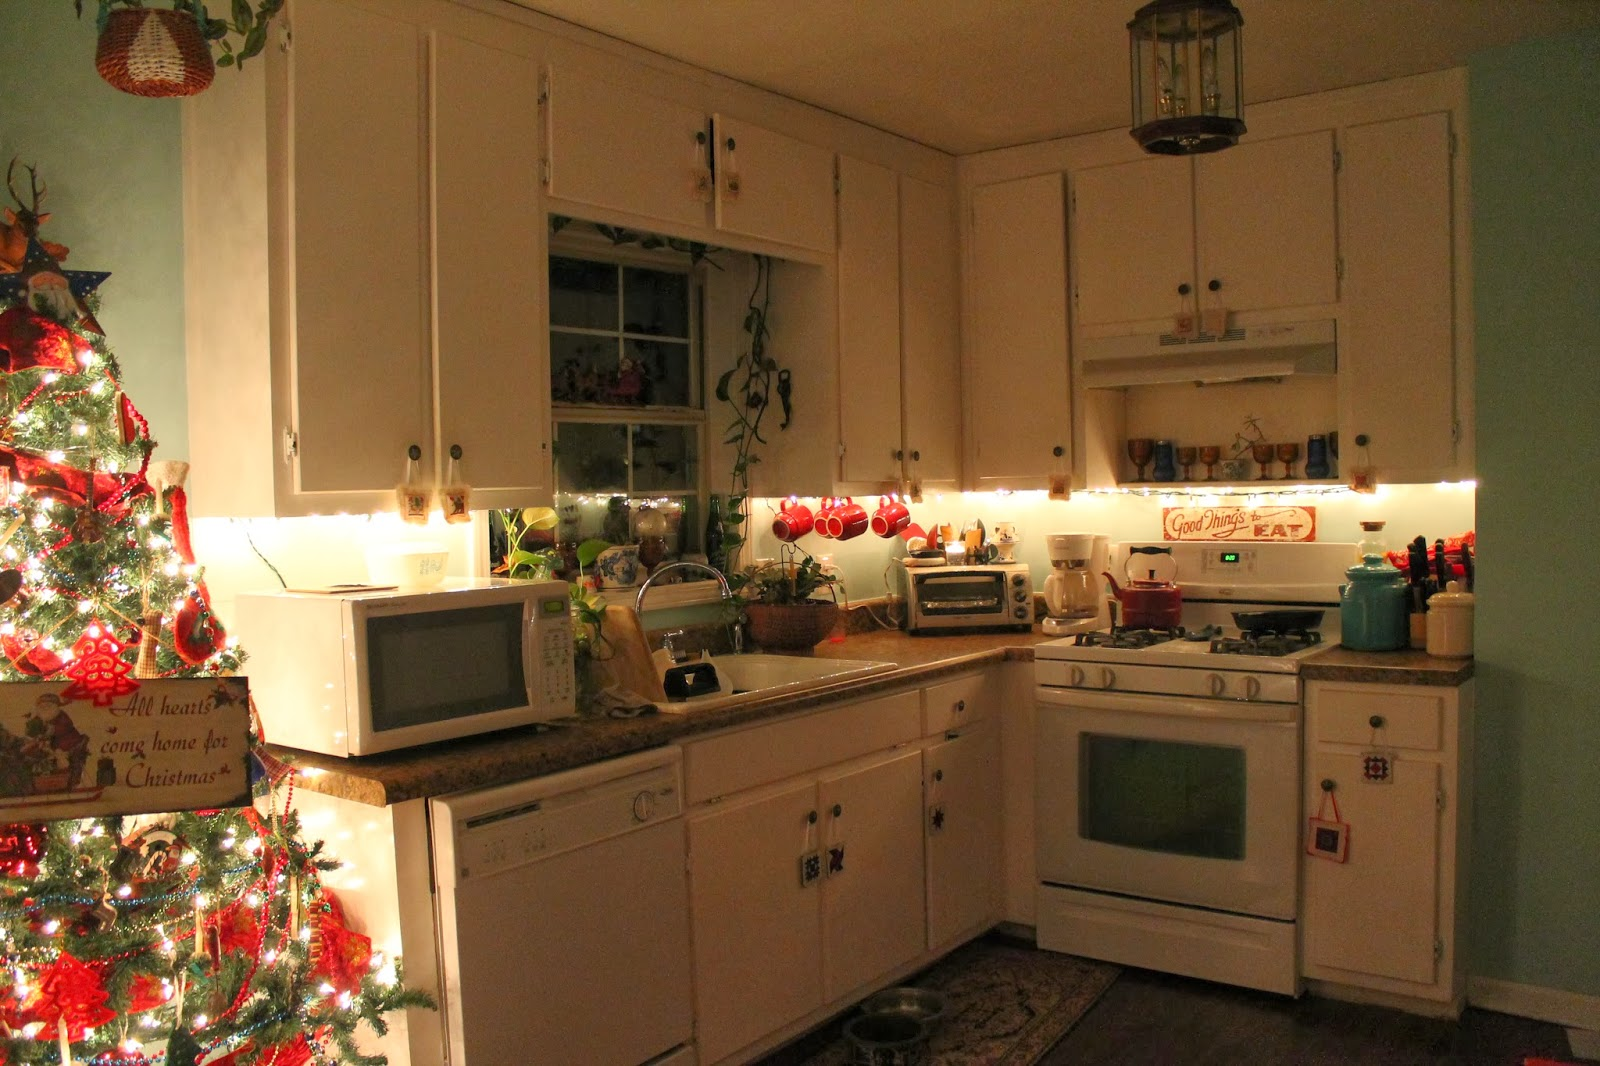 diy under cabinet lighting with white kitchen cabinet lighting Christmas decorating is in full swing over here Today marked my third and final day of decorating While I was working in the kitchen last night